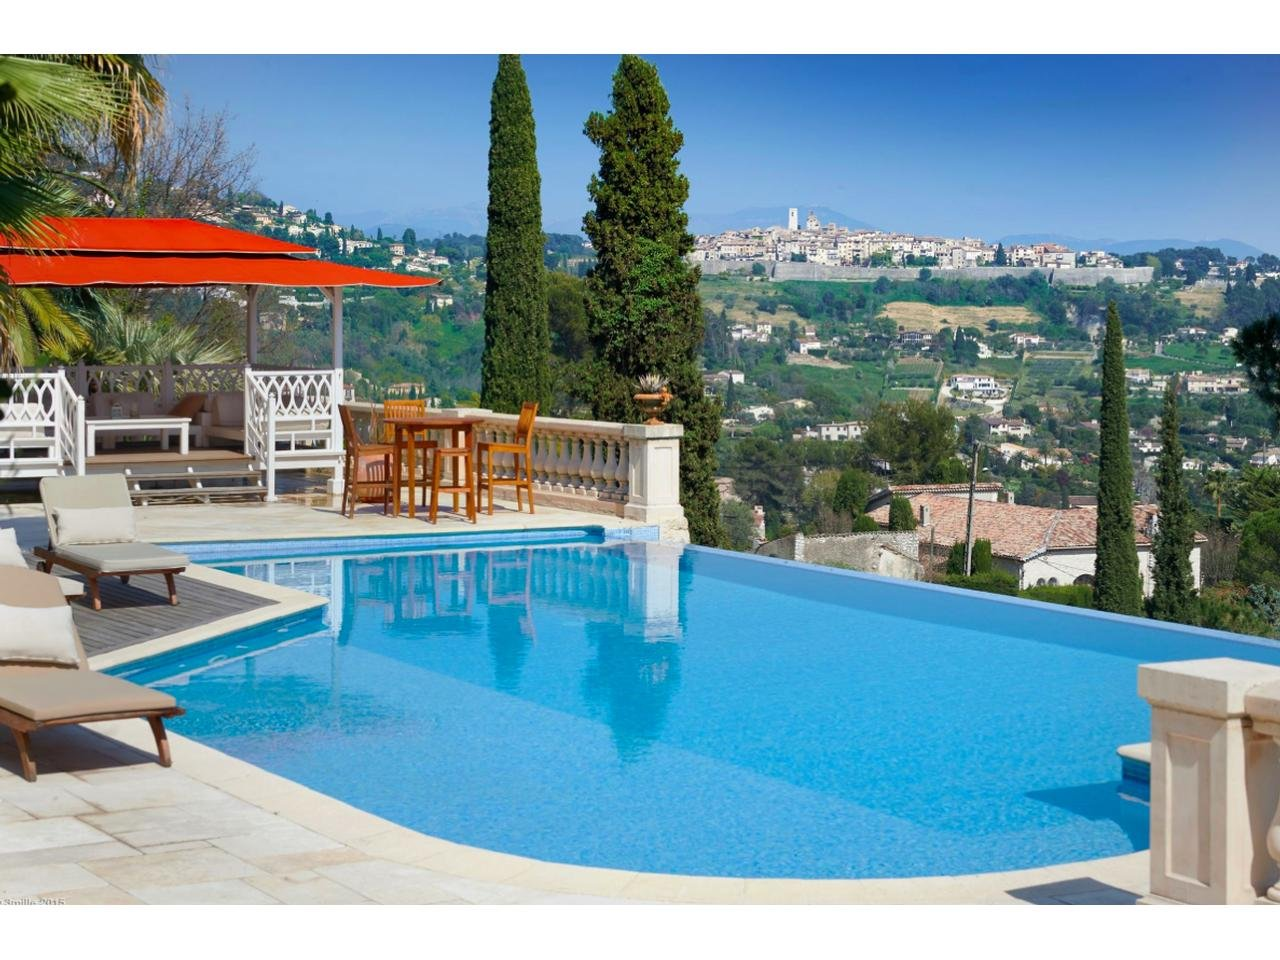 Charming and authentic provencal property in La Colle-sur-Loup - Sole agent